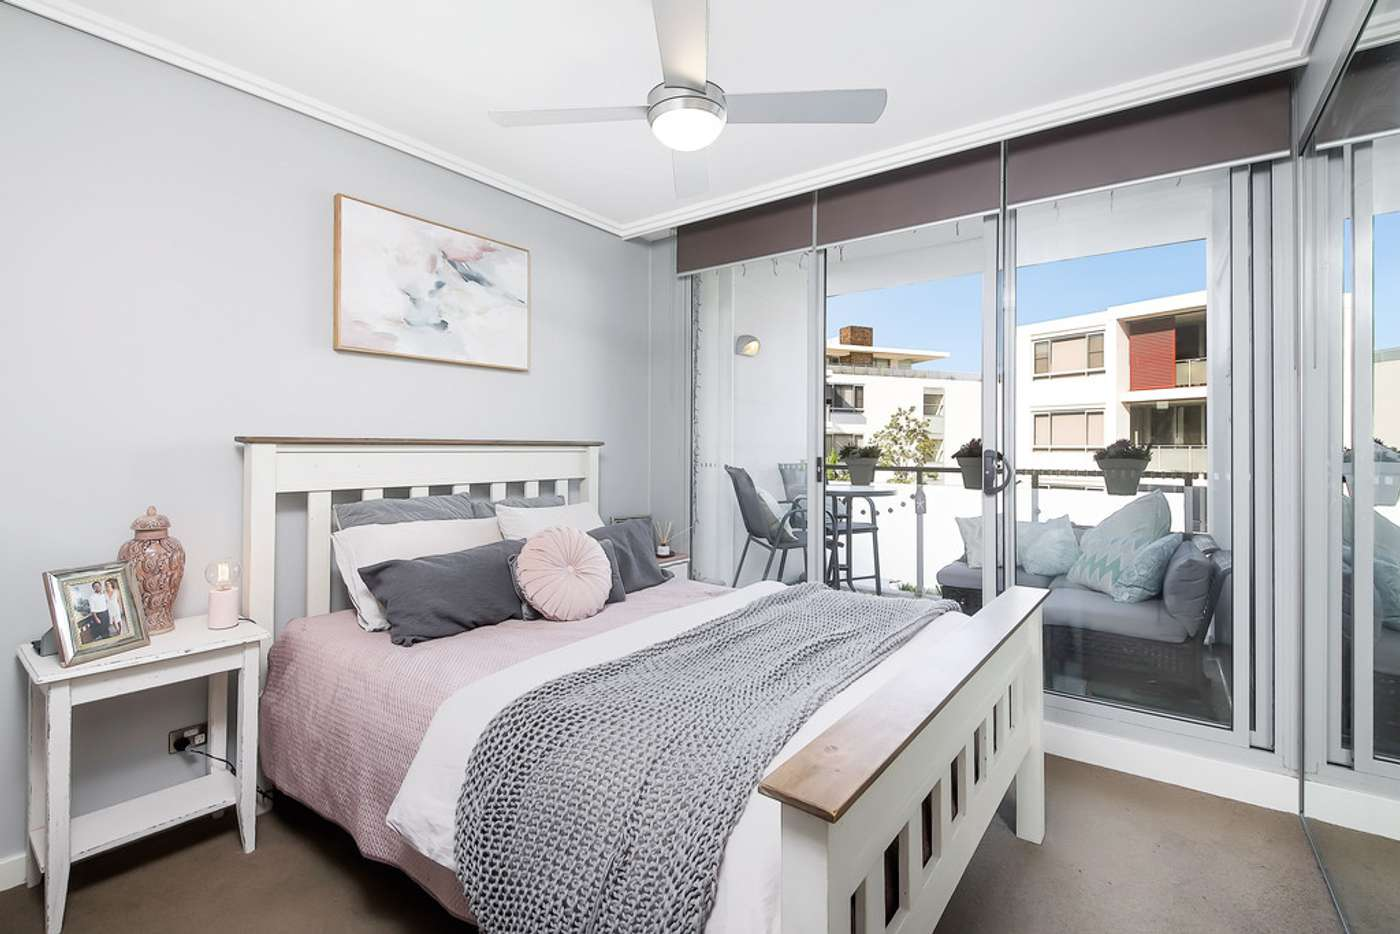 Sixth view of Homely apartment listing, 111/1 Avenue Of Europe, Newington NSW 2127